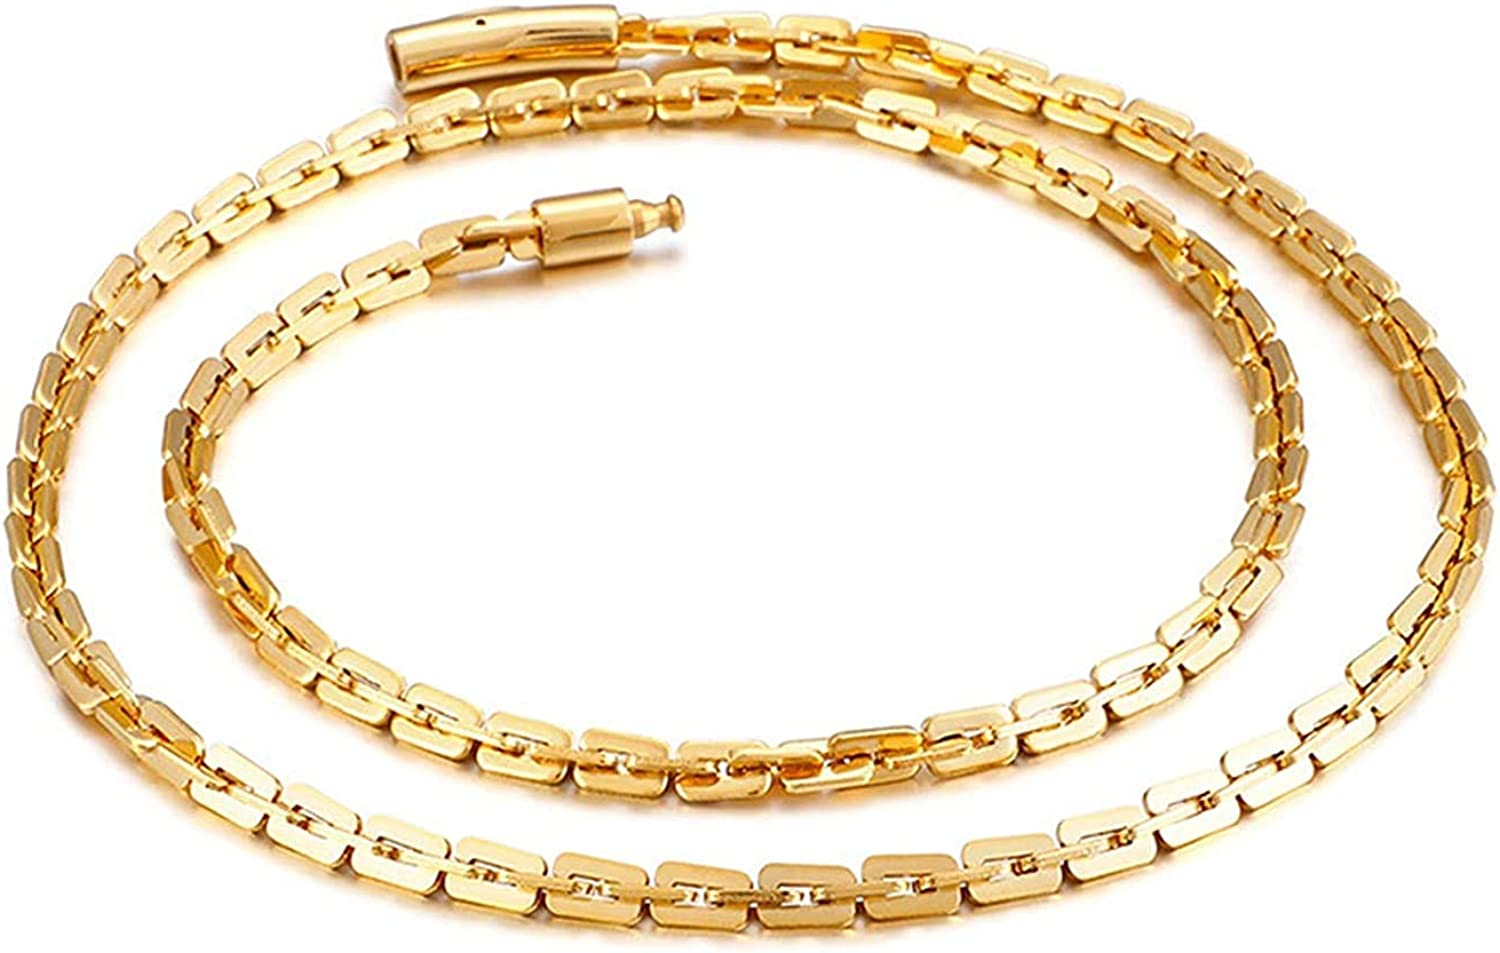 LOPEZ KENT Men Stainless Steel Necklace Oval Curb Chain Black//Gold//Grey